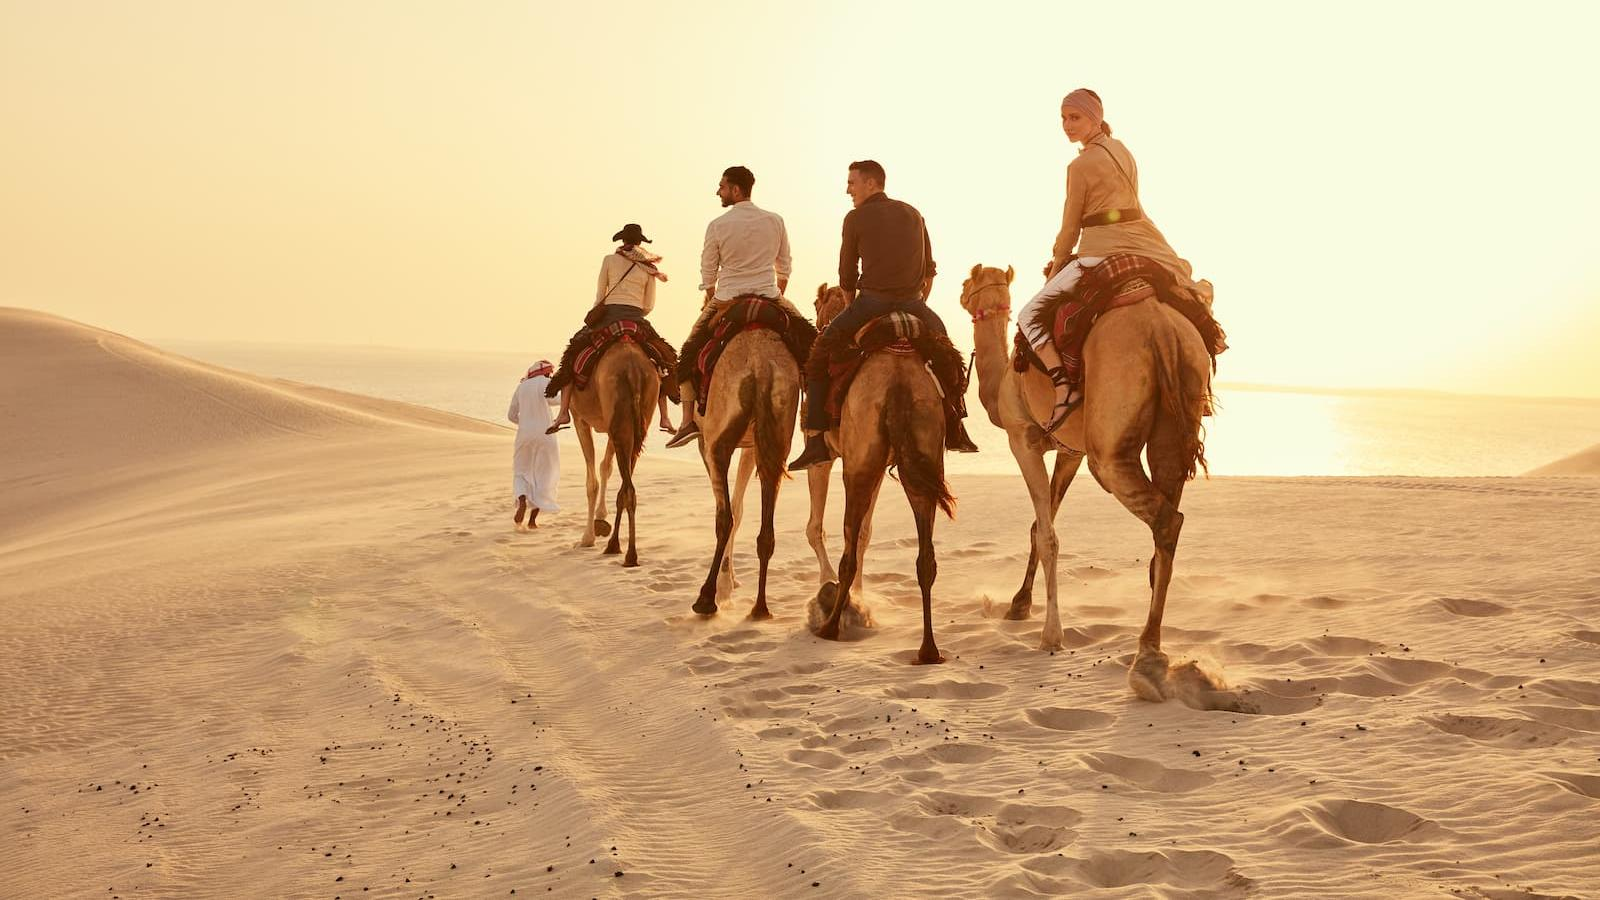 Qatar Tourism invites eligible residents to register for its Tour Guide Training Program